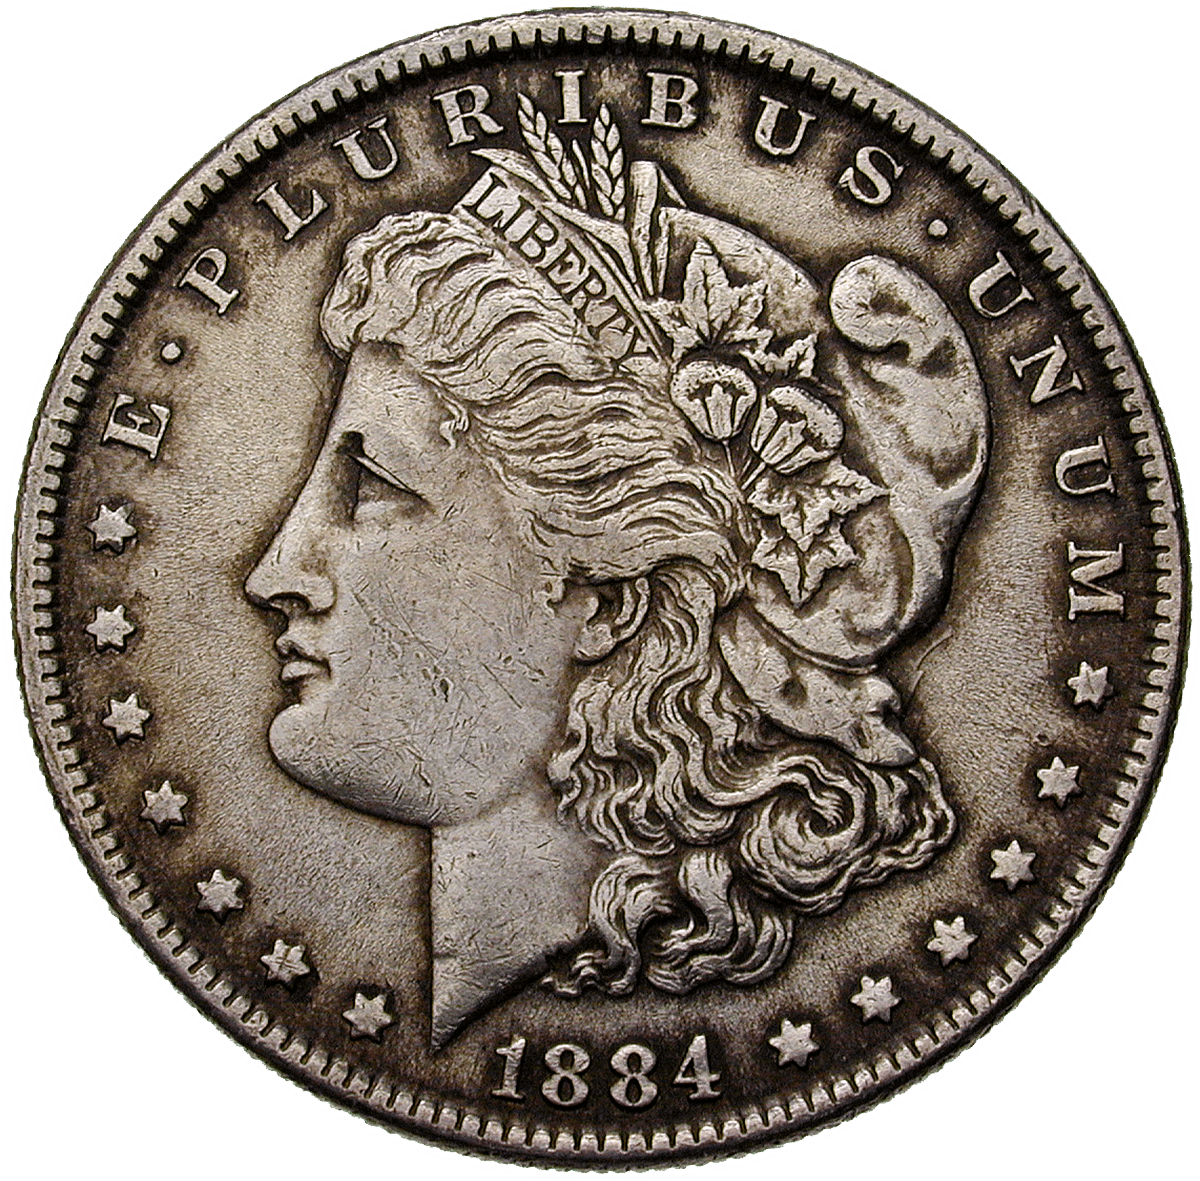 United States of America, 1 Dollar 1884 (obverse)